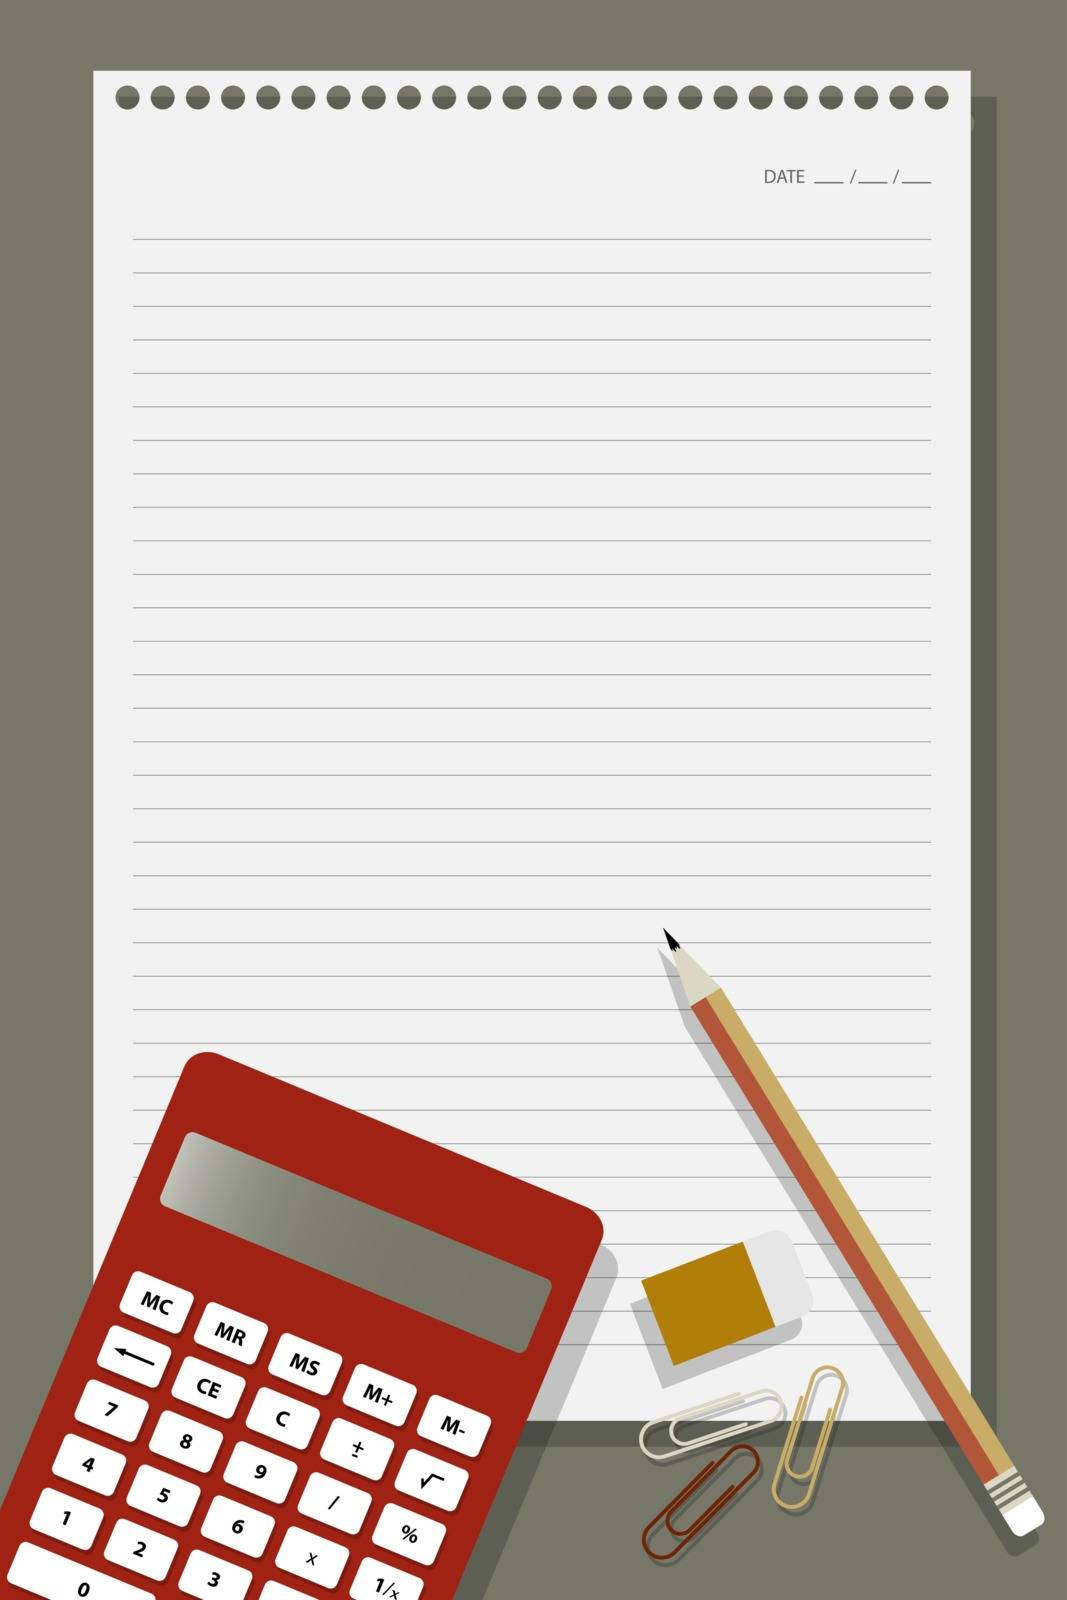 flat design for abstract shapes of office equipment